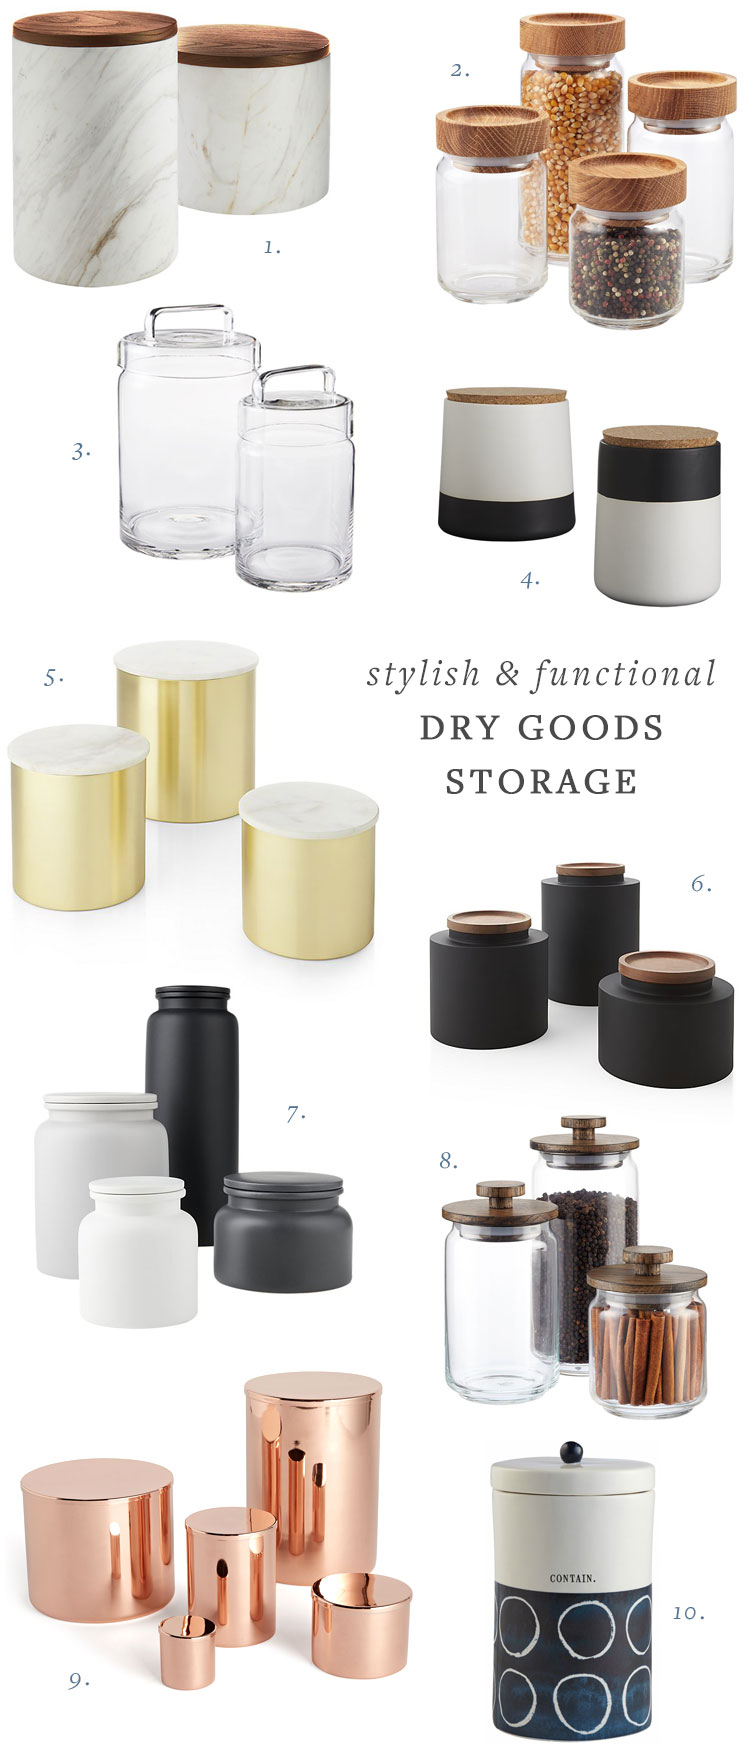 my search for stylish (and functional) dry goods storage containers. full source list on jojotastic.com #foodstorage #canisters #kitchenstorage #smallspaces #organization #kitchenorganization